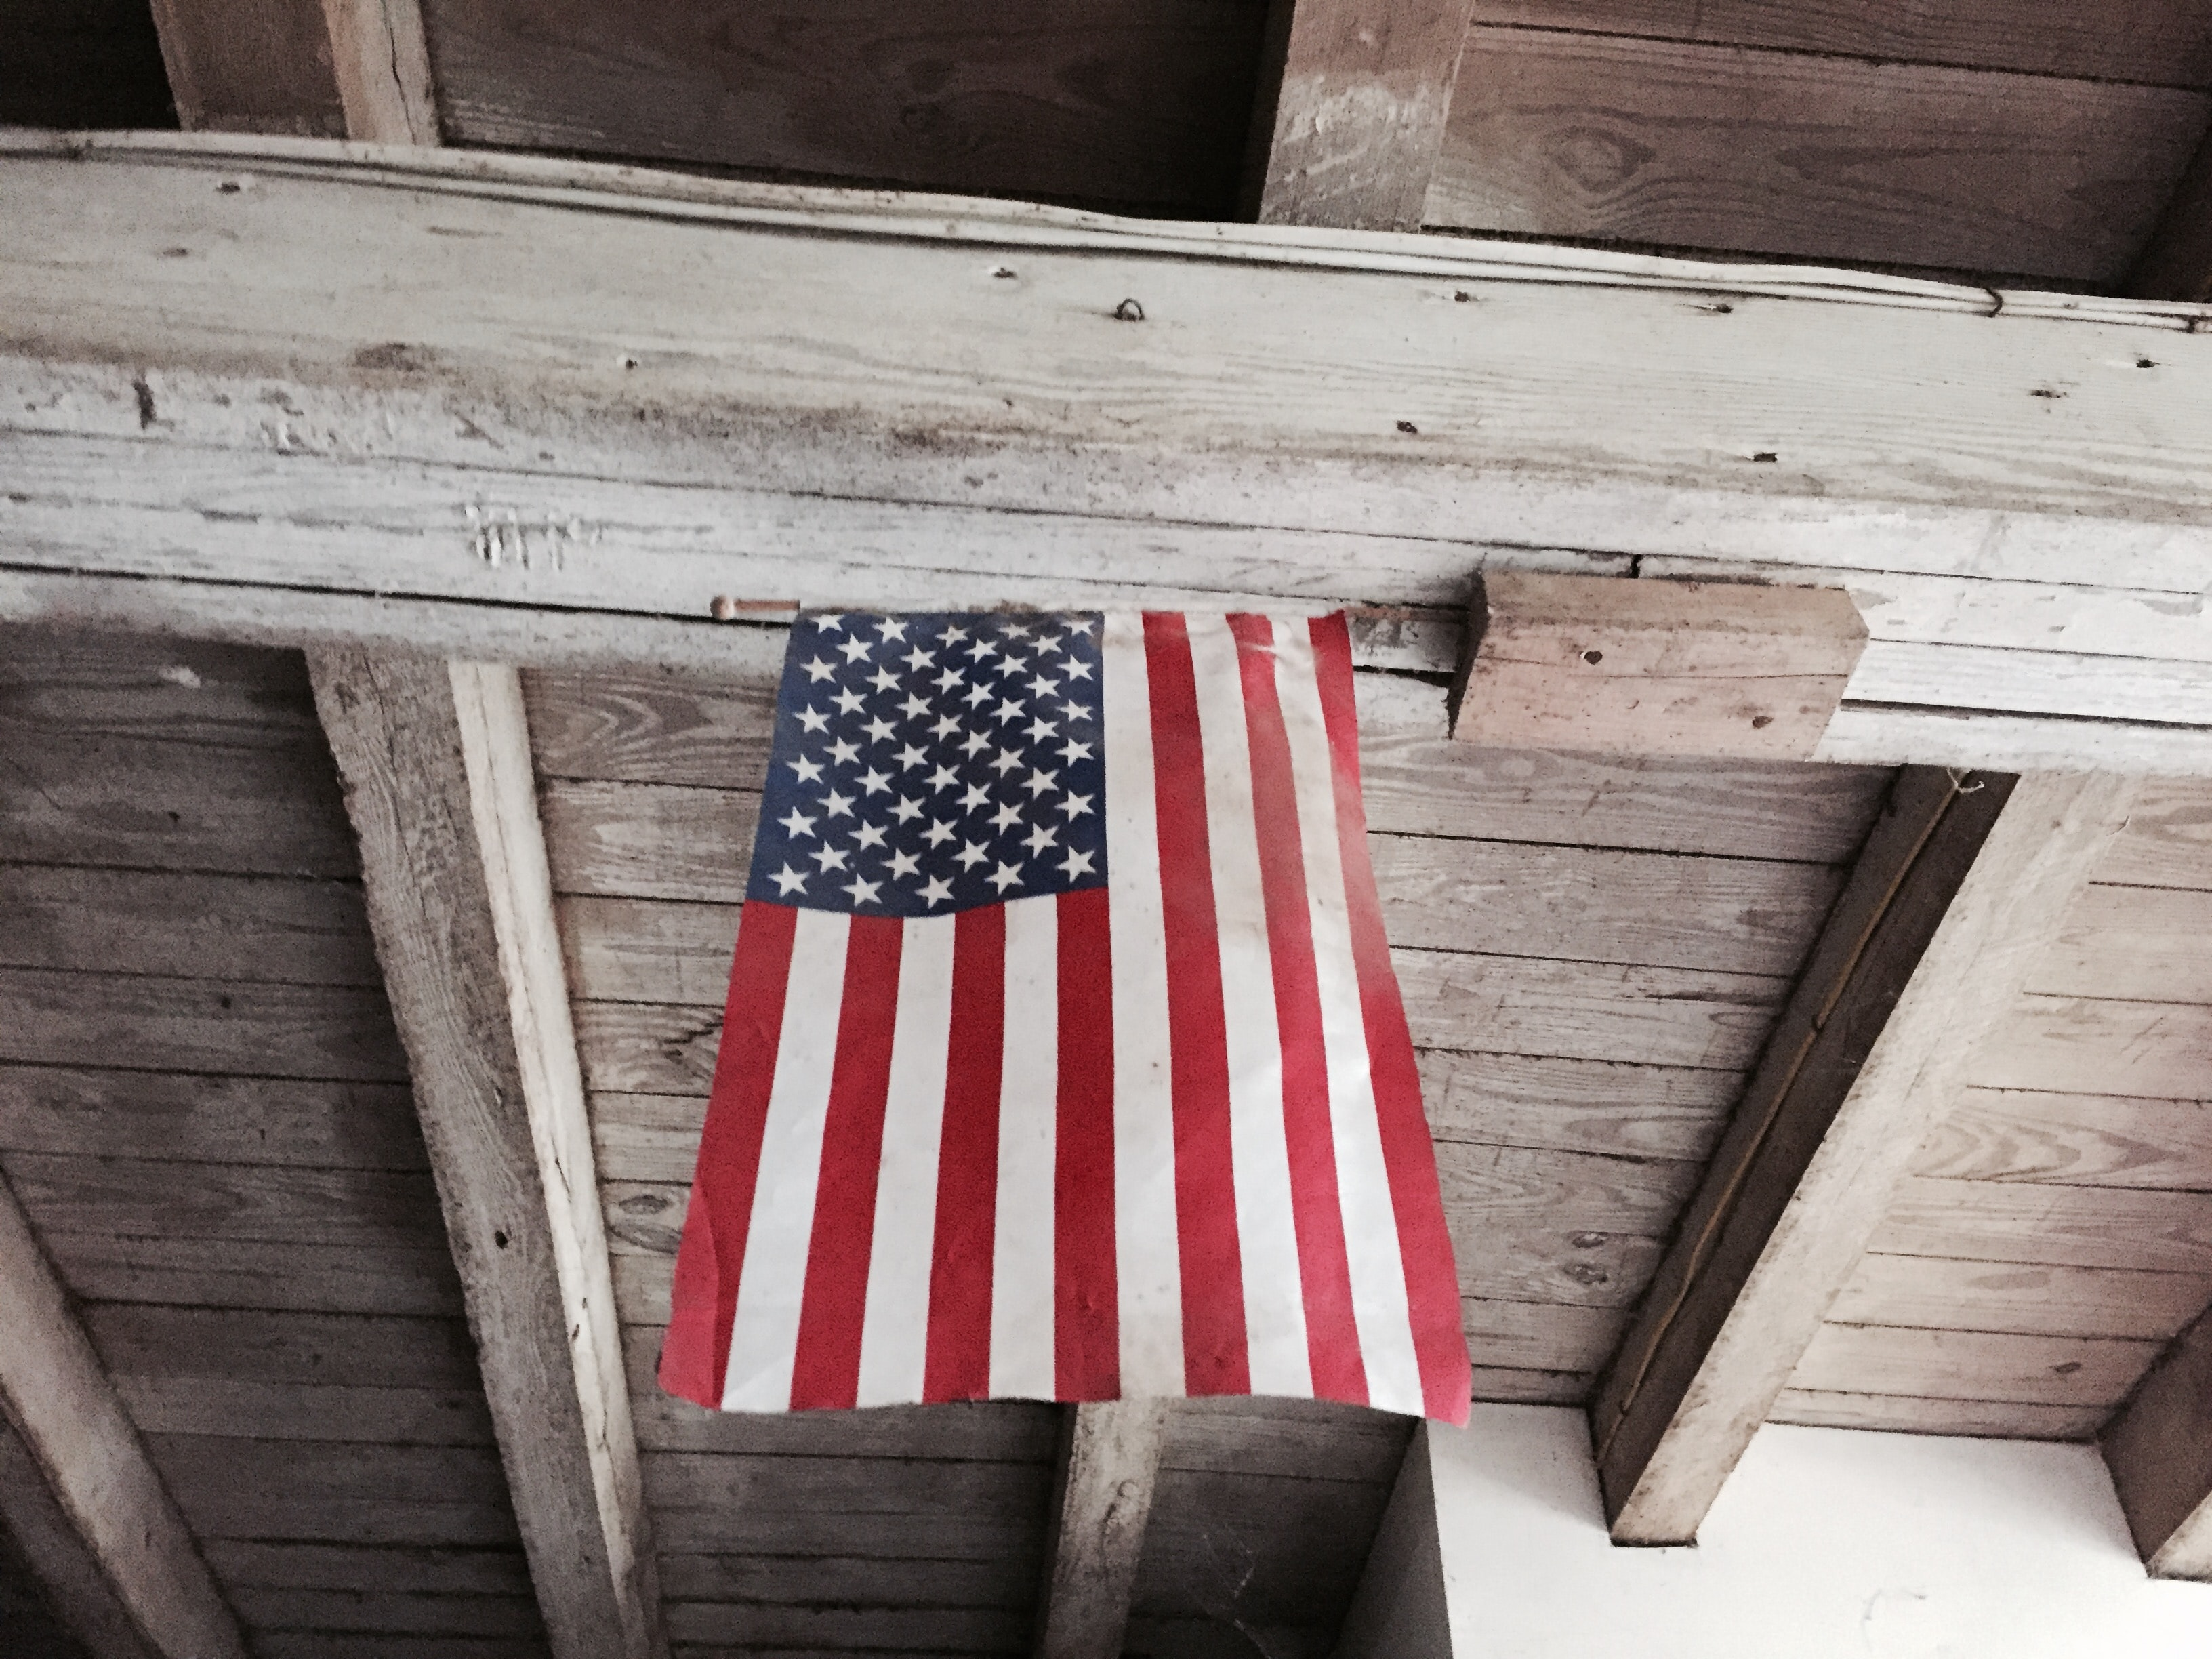 The American flag hanging from a wooden ceiling